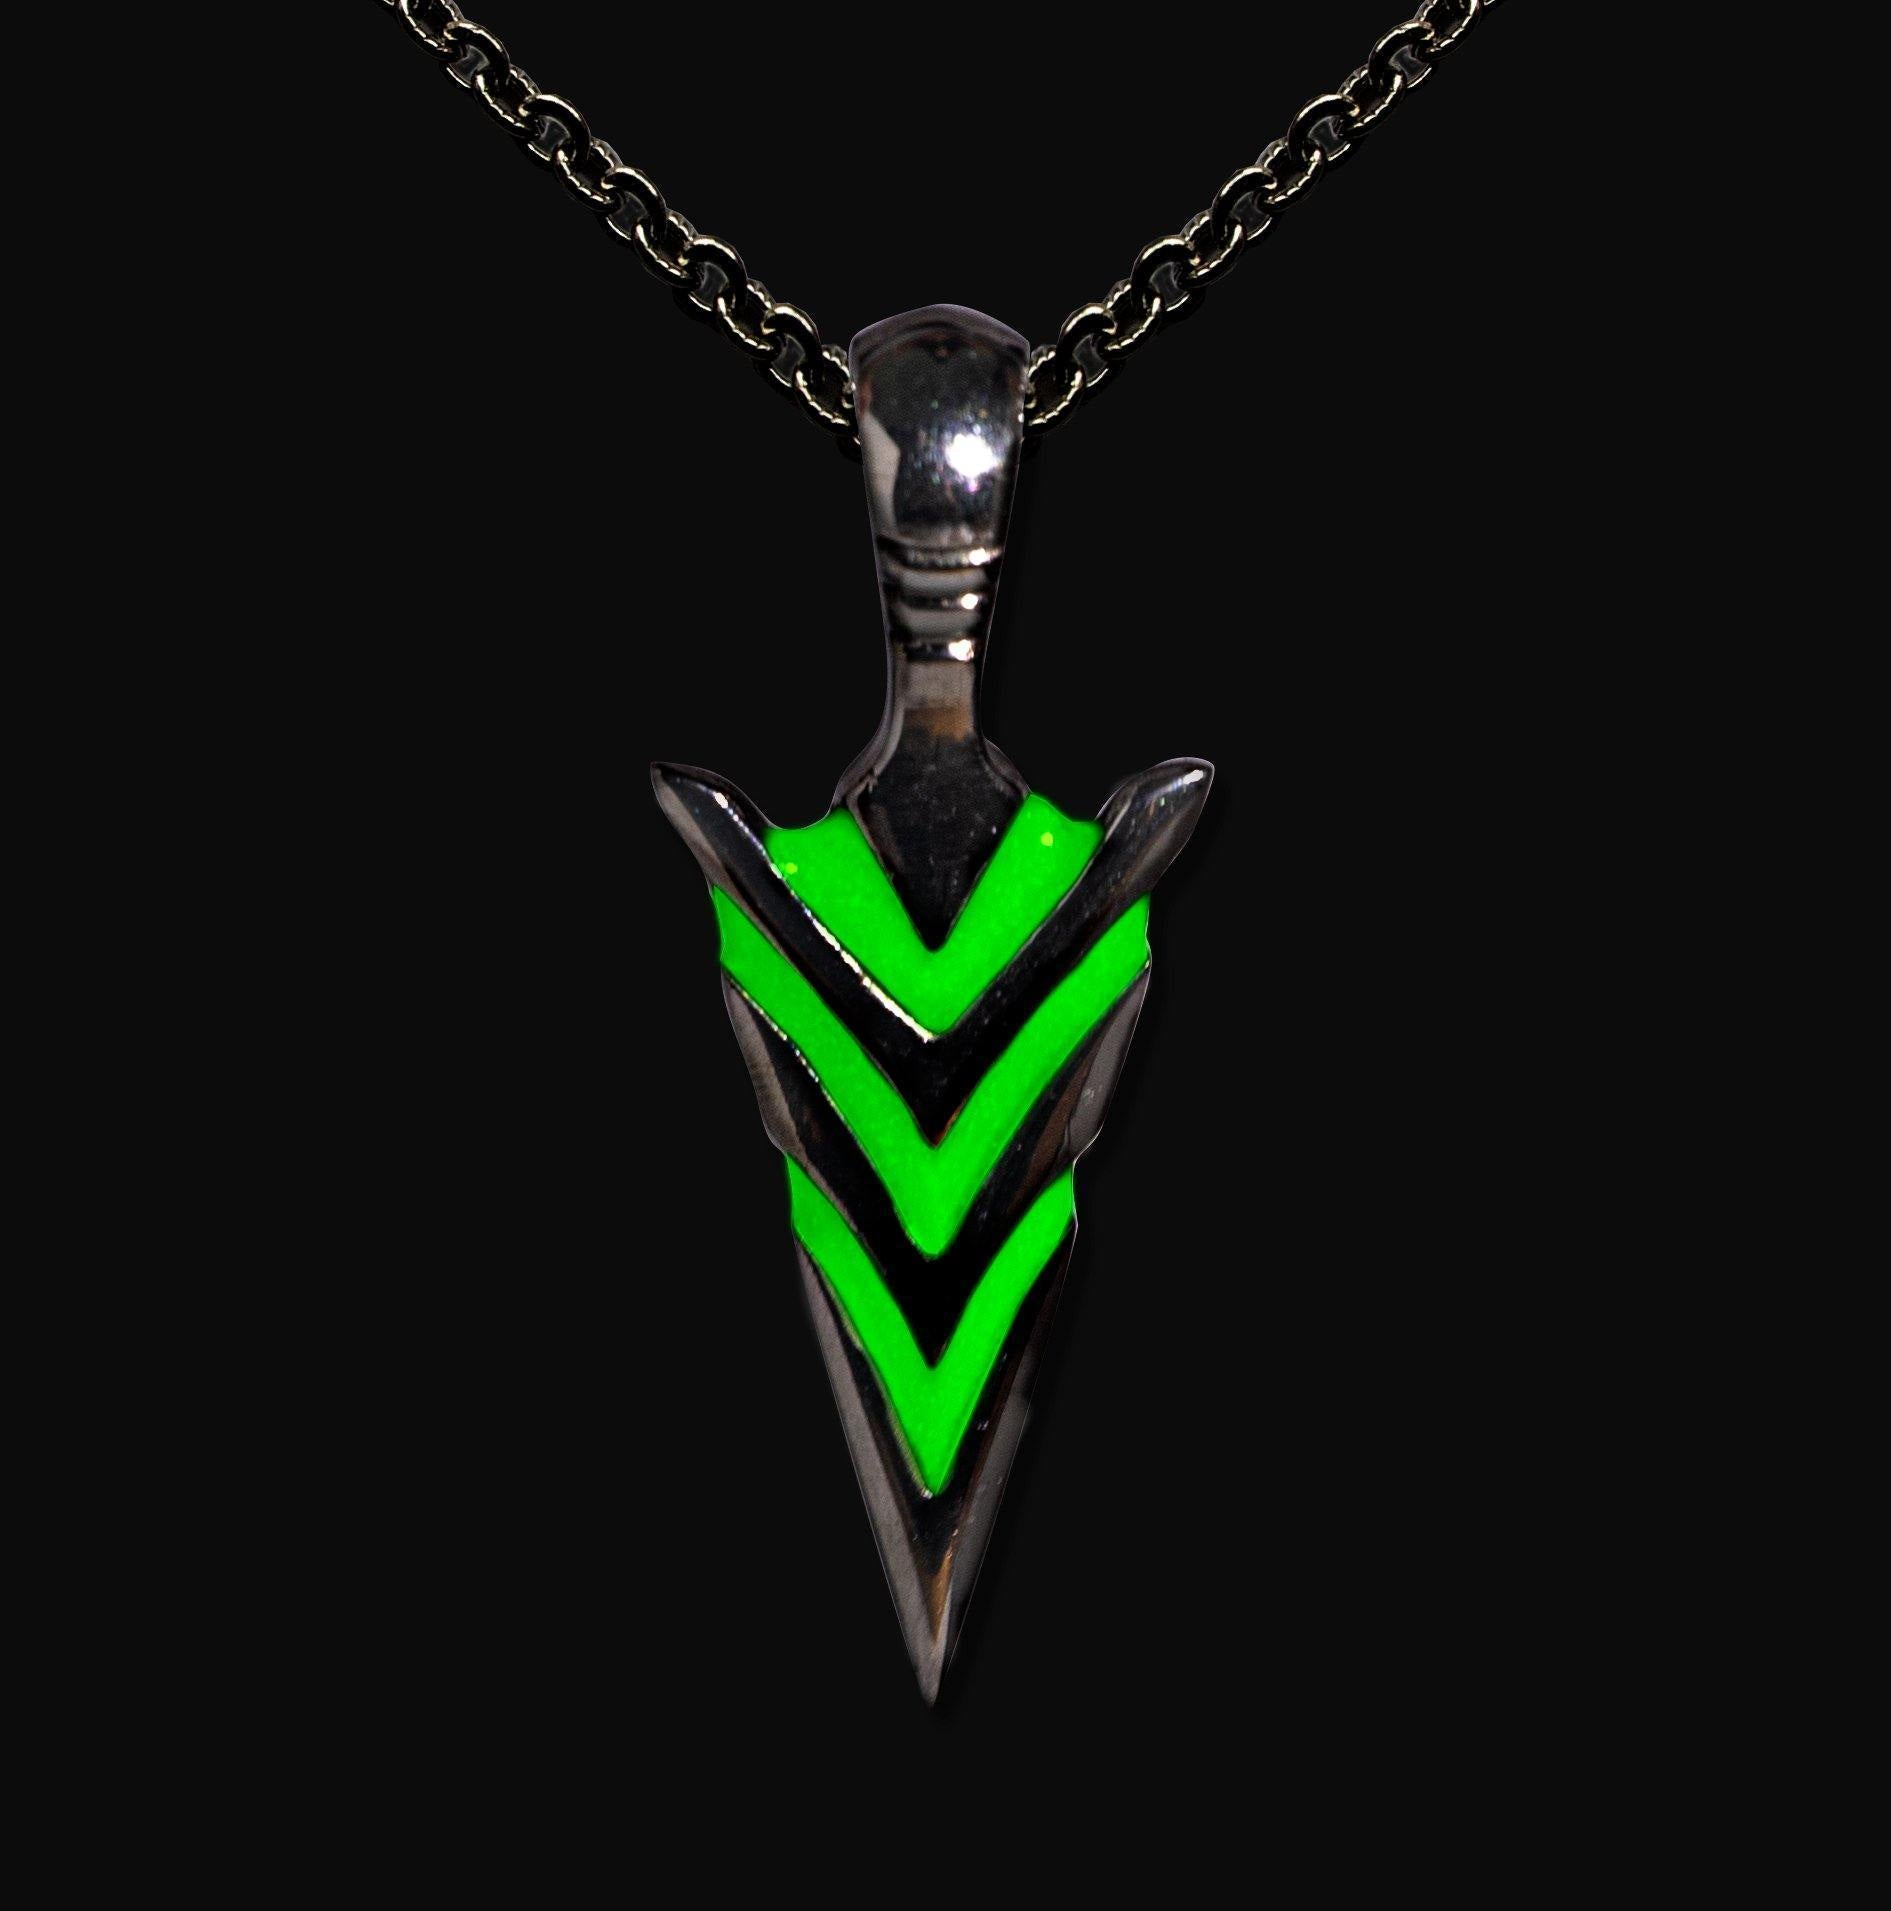 Exclusive Glow In The Dark Arrowhead Necklaces - Wyvern's Hoard